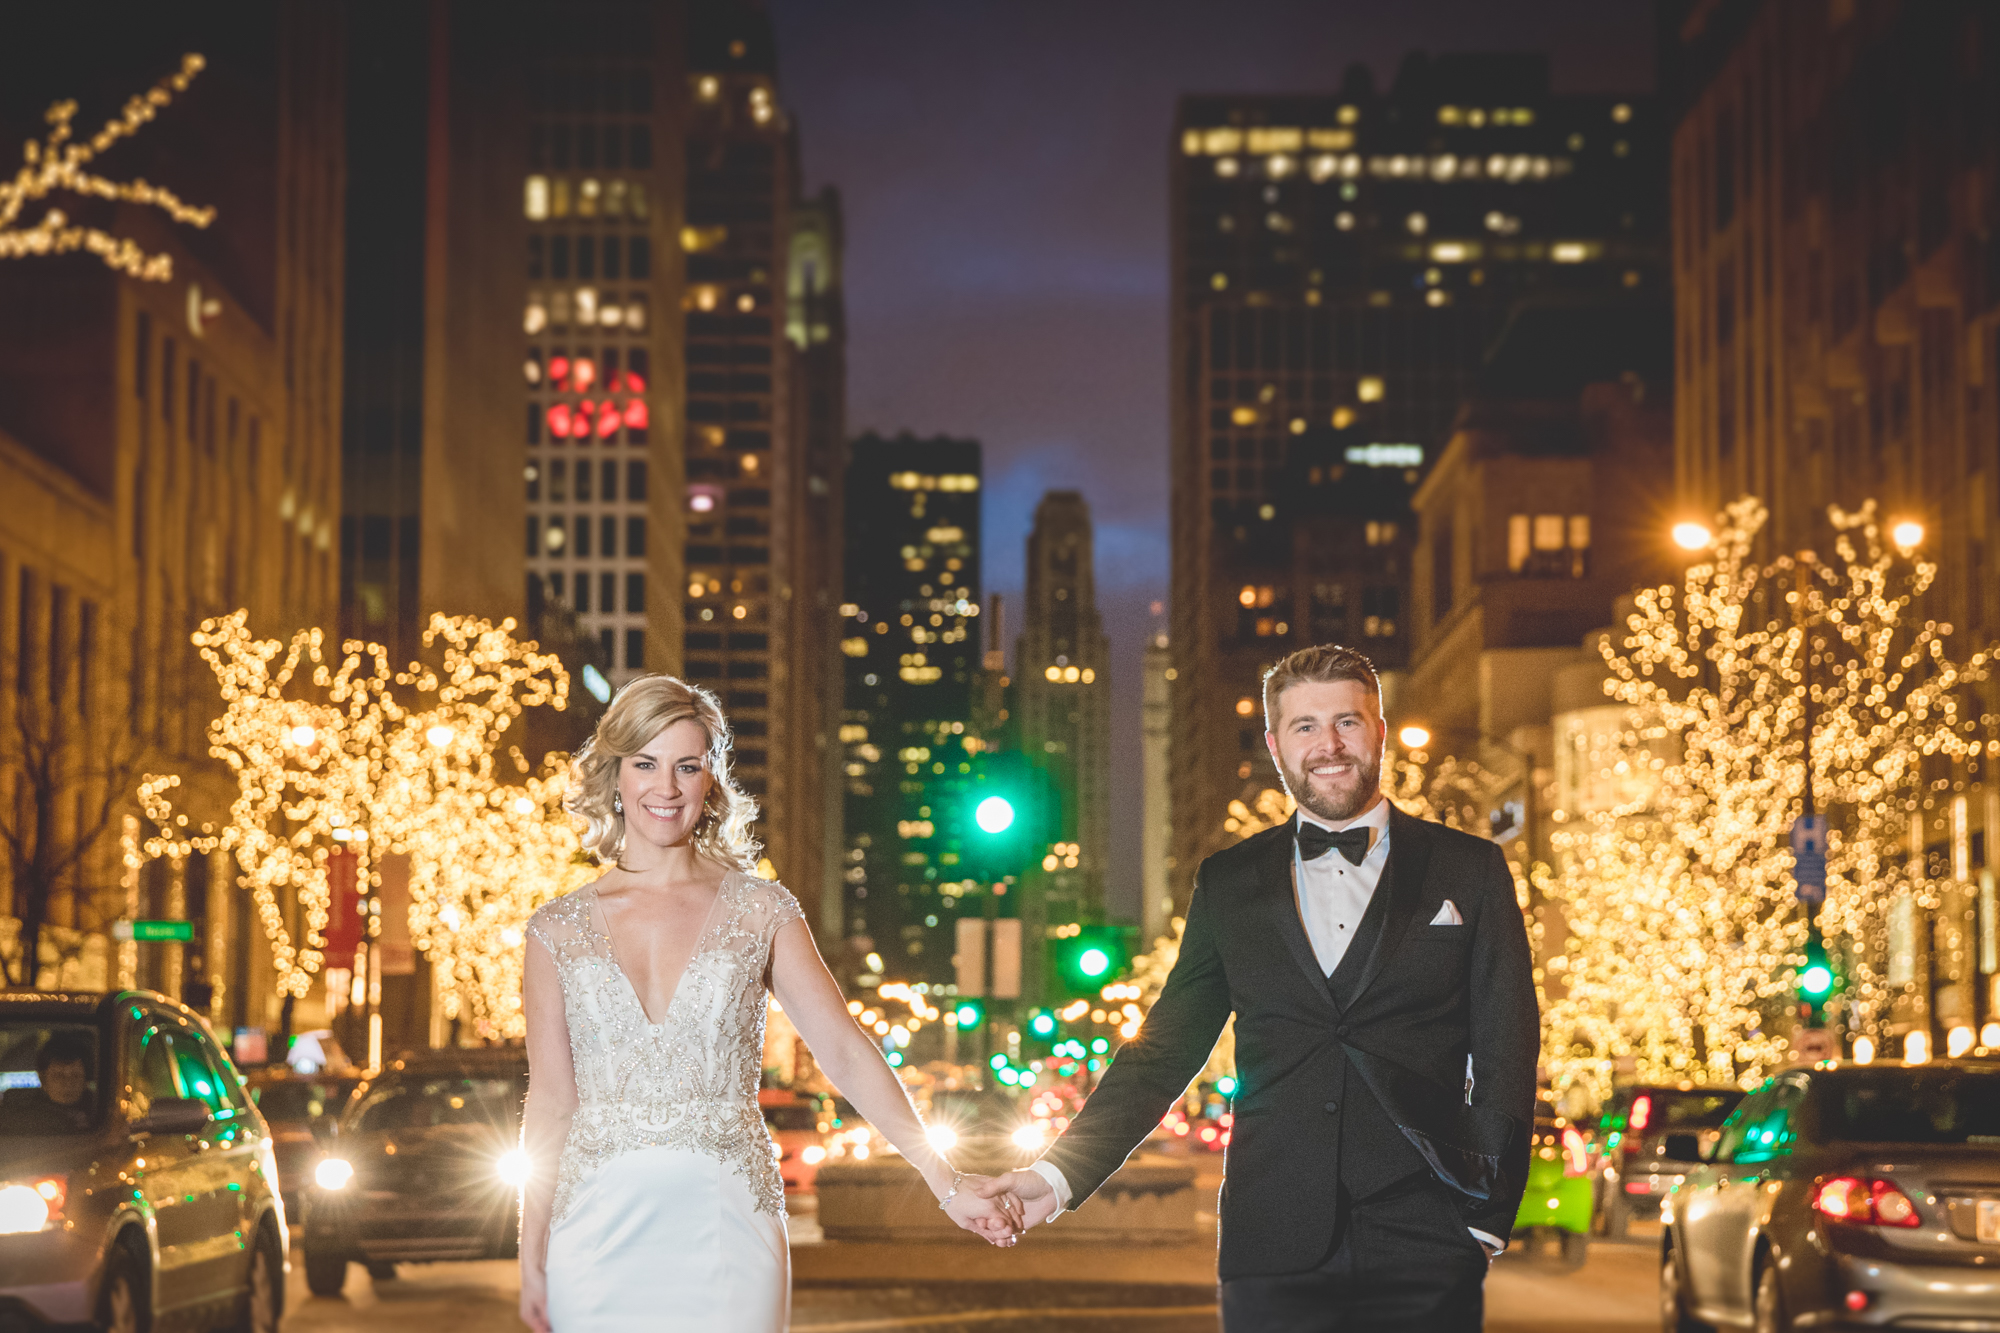 bride-and-groom-mag-mile.jpg